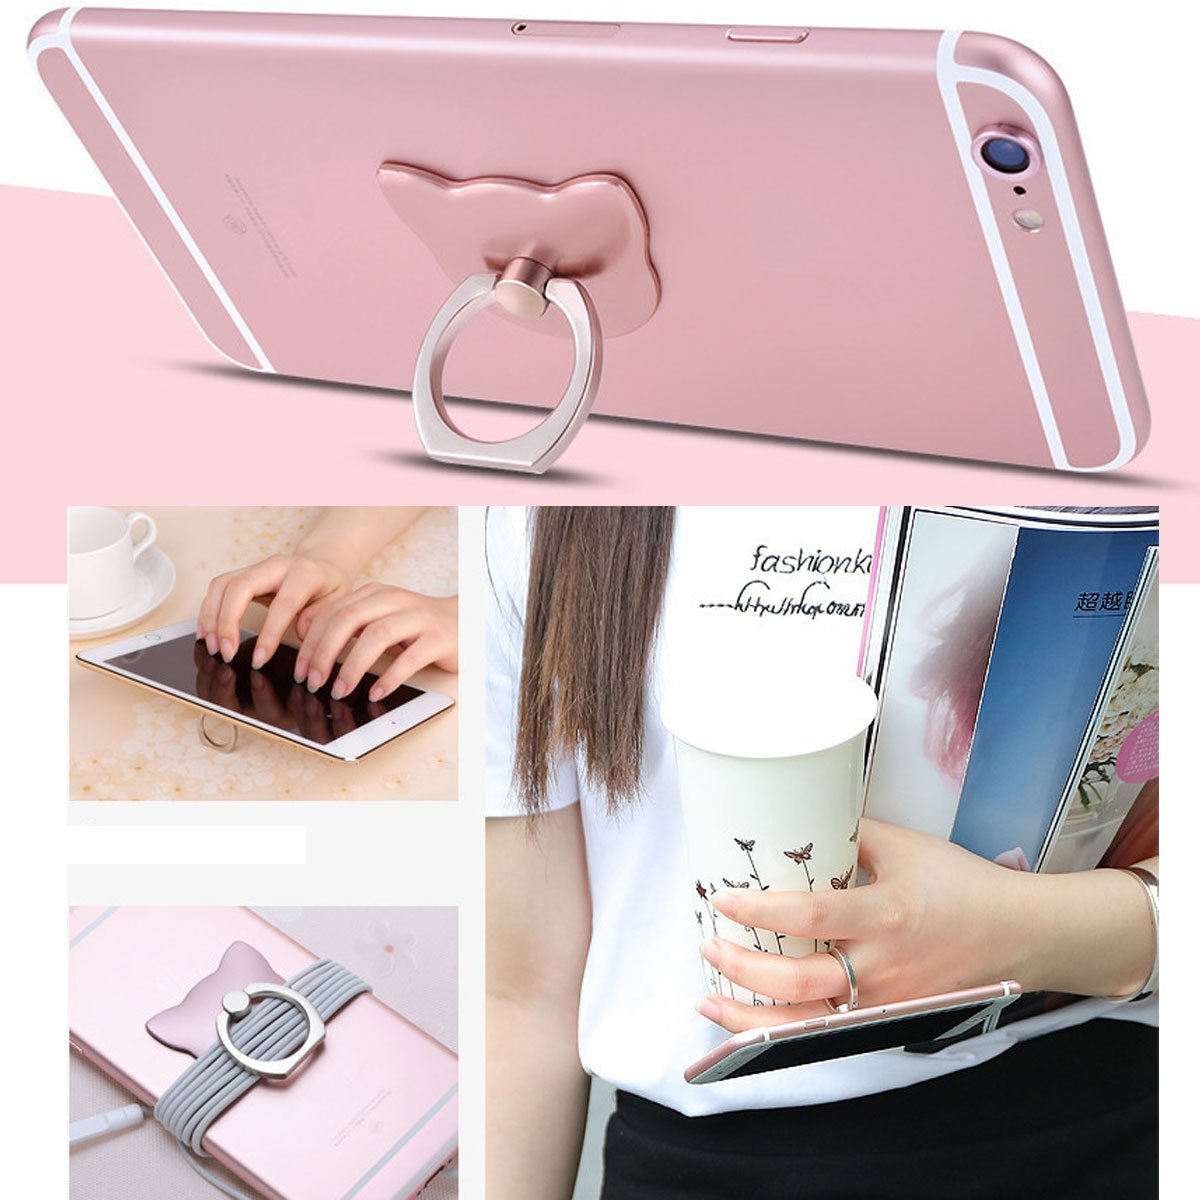 Rabbit Rose gold Phone ring holder //cell phone mount stand 2 Pieces,metal finger grip stand holder ring,car mount for iPhone 6s plus 7// Samsung Galaxy S7 edge HTC Nokia Smartphones Tablet phone ring